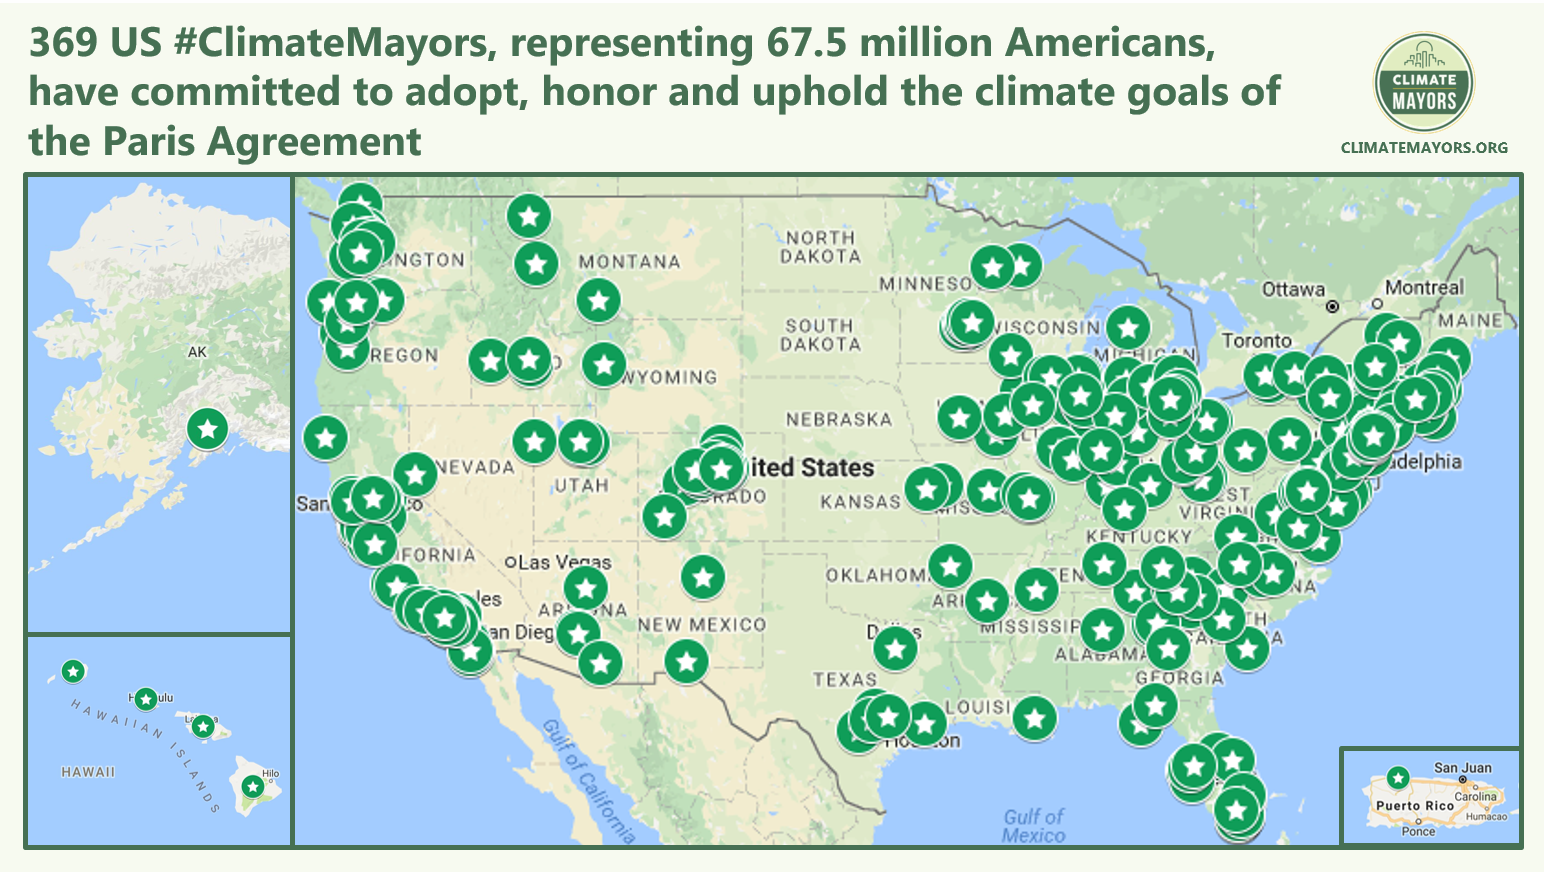 Climatemayors Adopt Honor And Uphold Parisagreement Goals Map Of Us By Climate